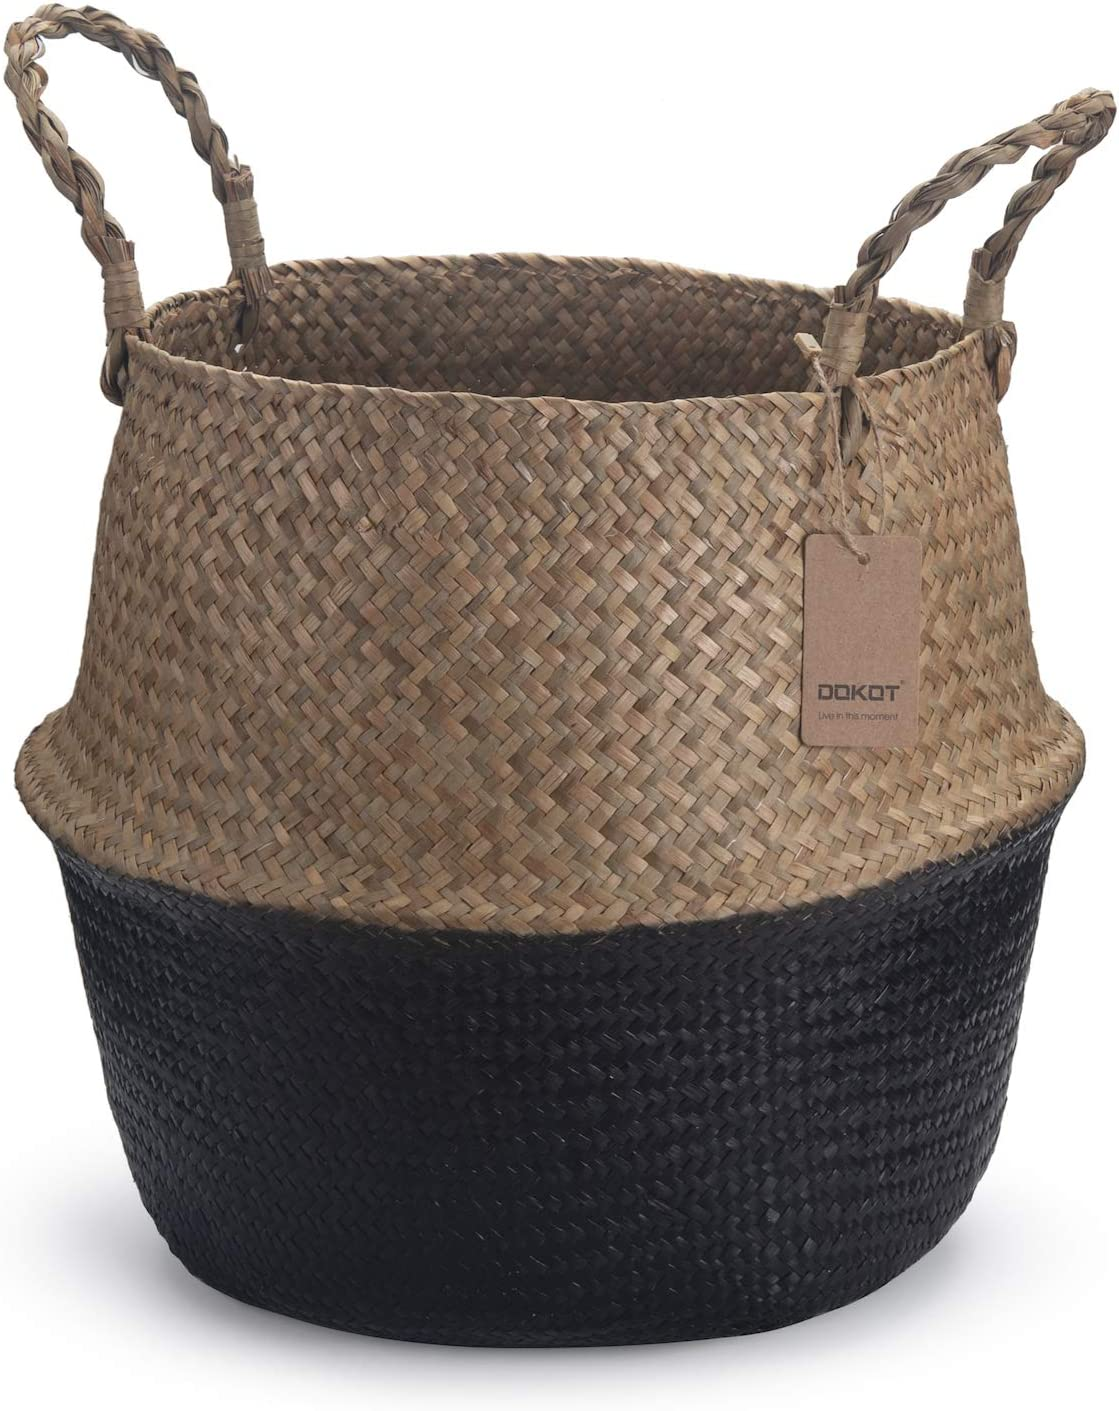 DOKOT Seagrass Belly Basket with Handles Natural Woven Planter Baskets for for Indoor Plants Storage Laundry (Black 9 inch D x 11 inch H)